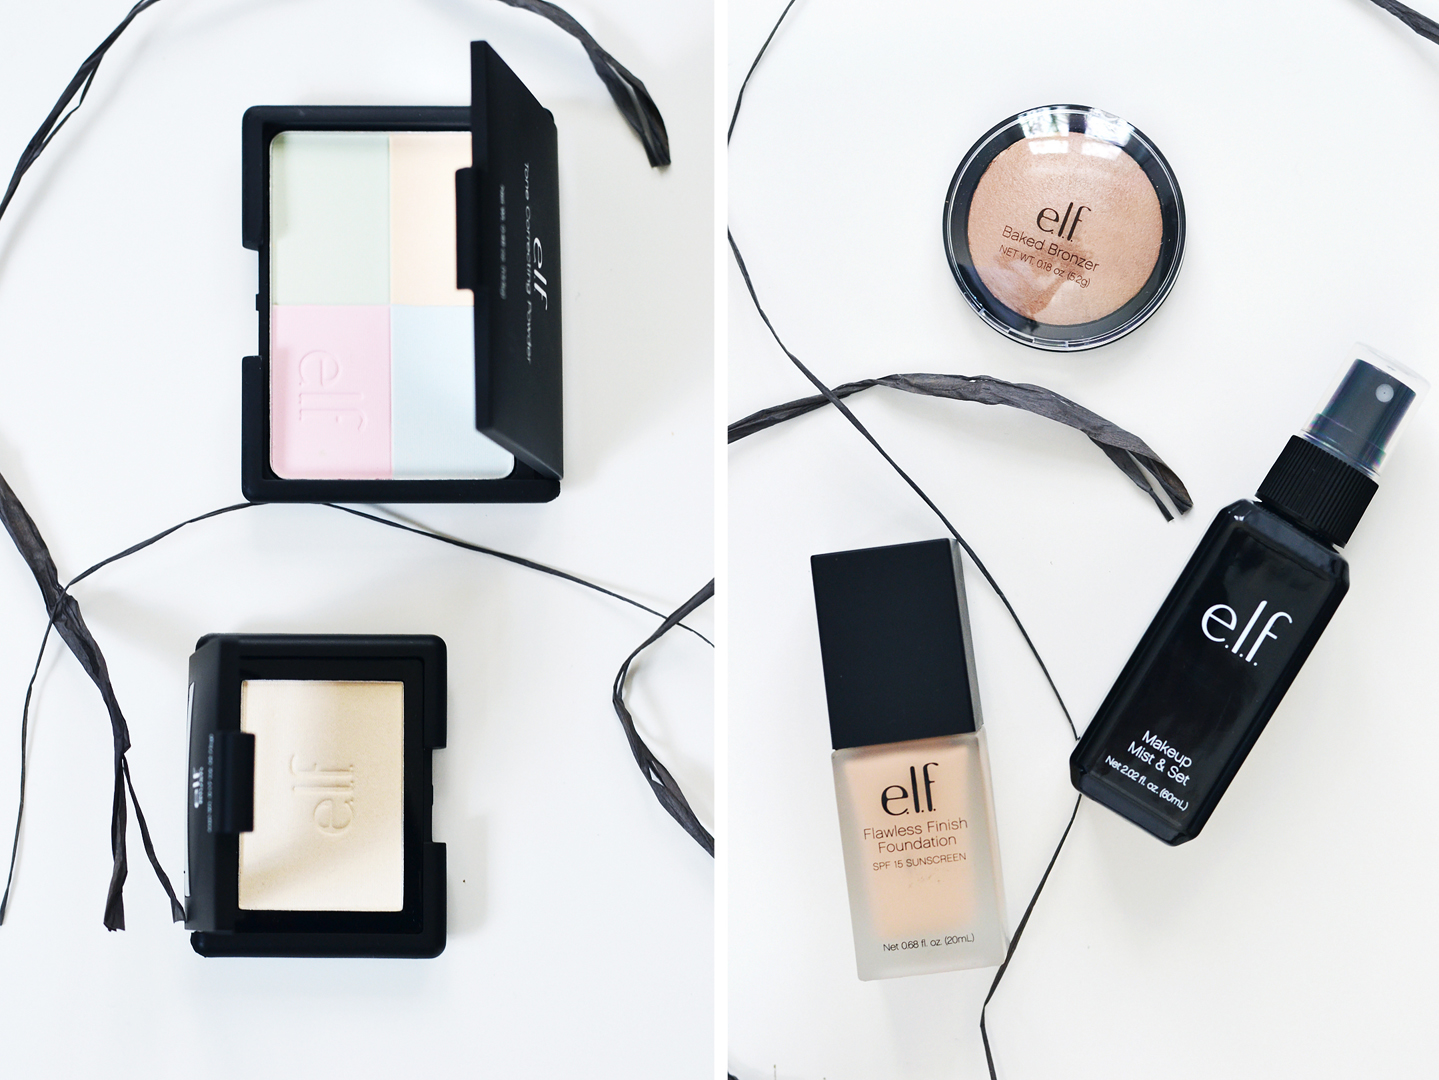 E.L.F. correcting powder, flawless finish foundation, fond de teint, fixing spray, mist, highlighter, gotta glow, nars dupe, albatross, bronzer, st-lucia,